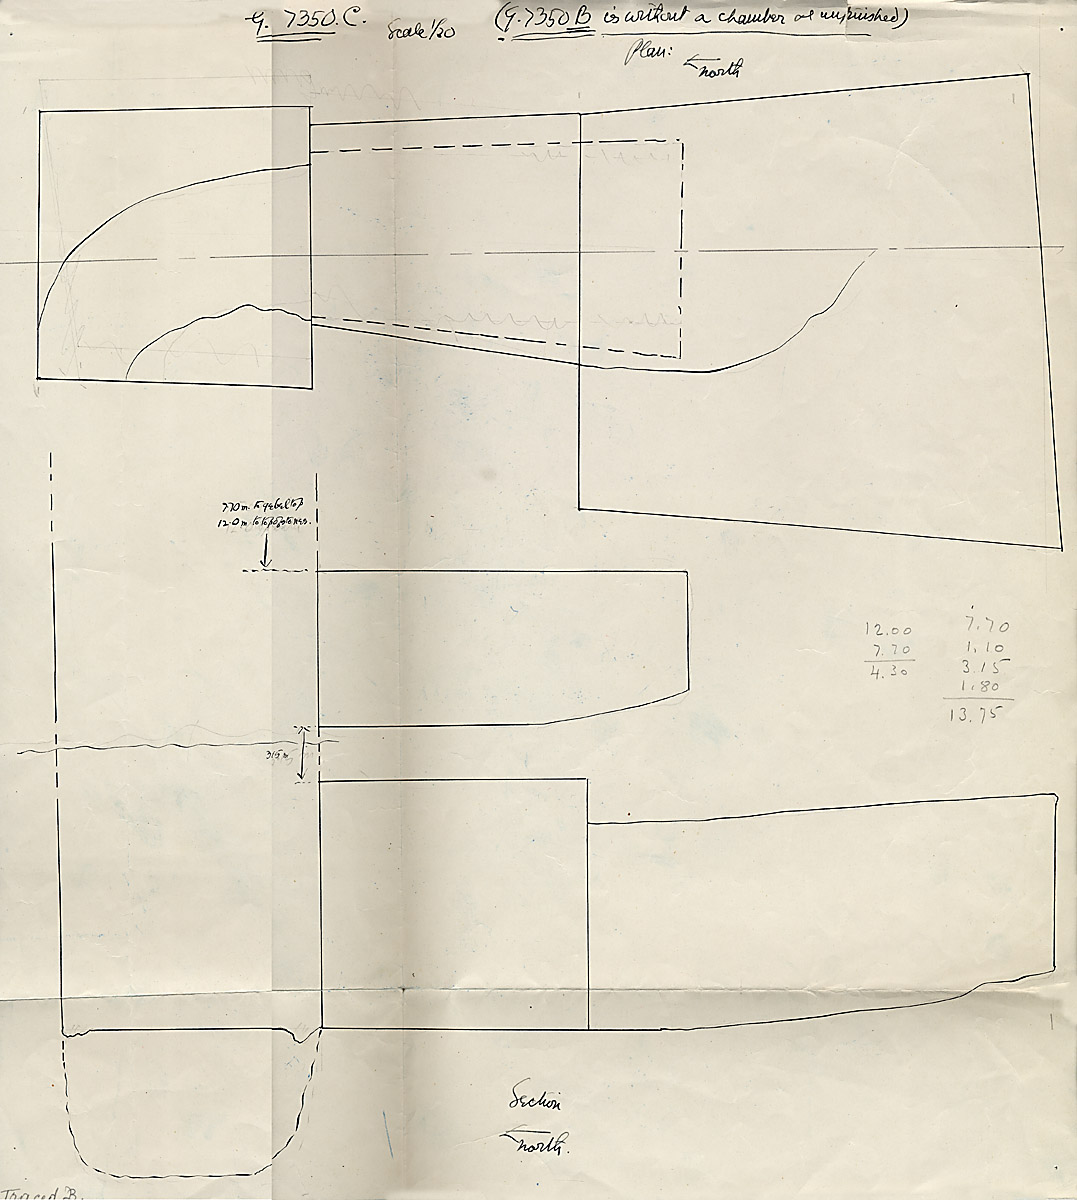 Maps and plans: G 7350, Shaft C